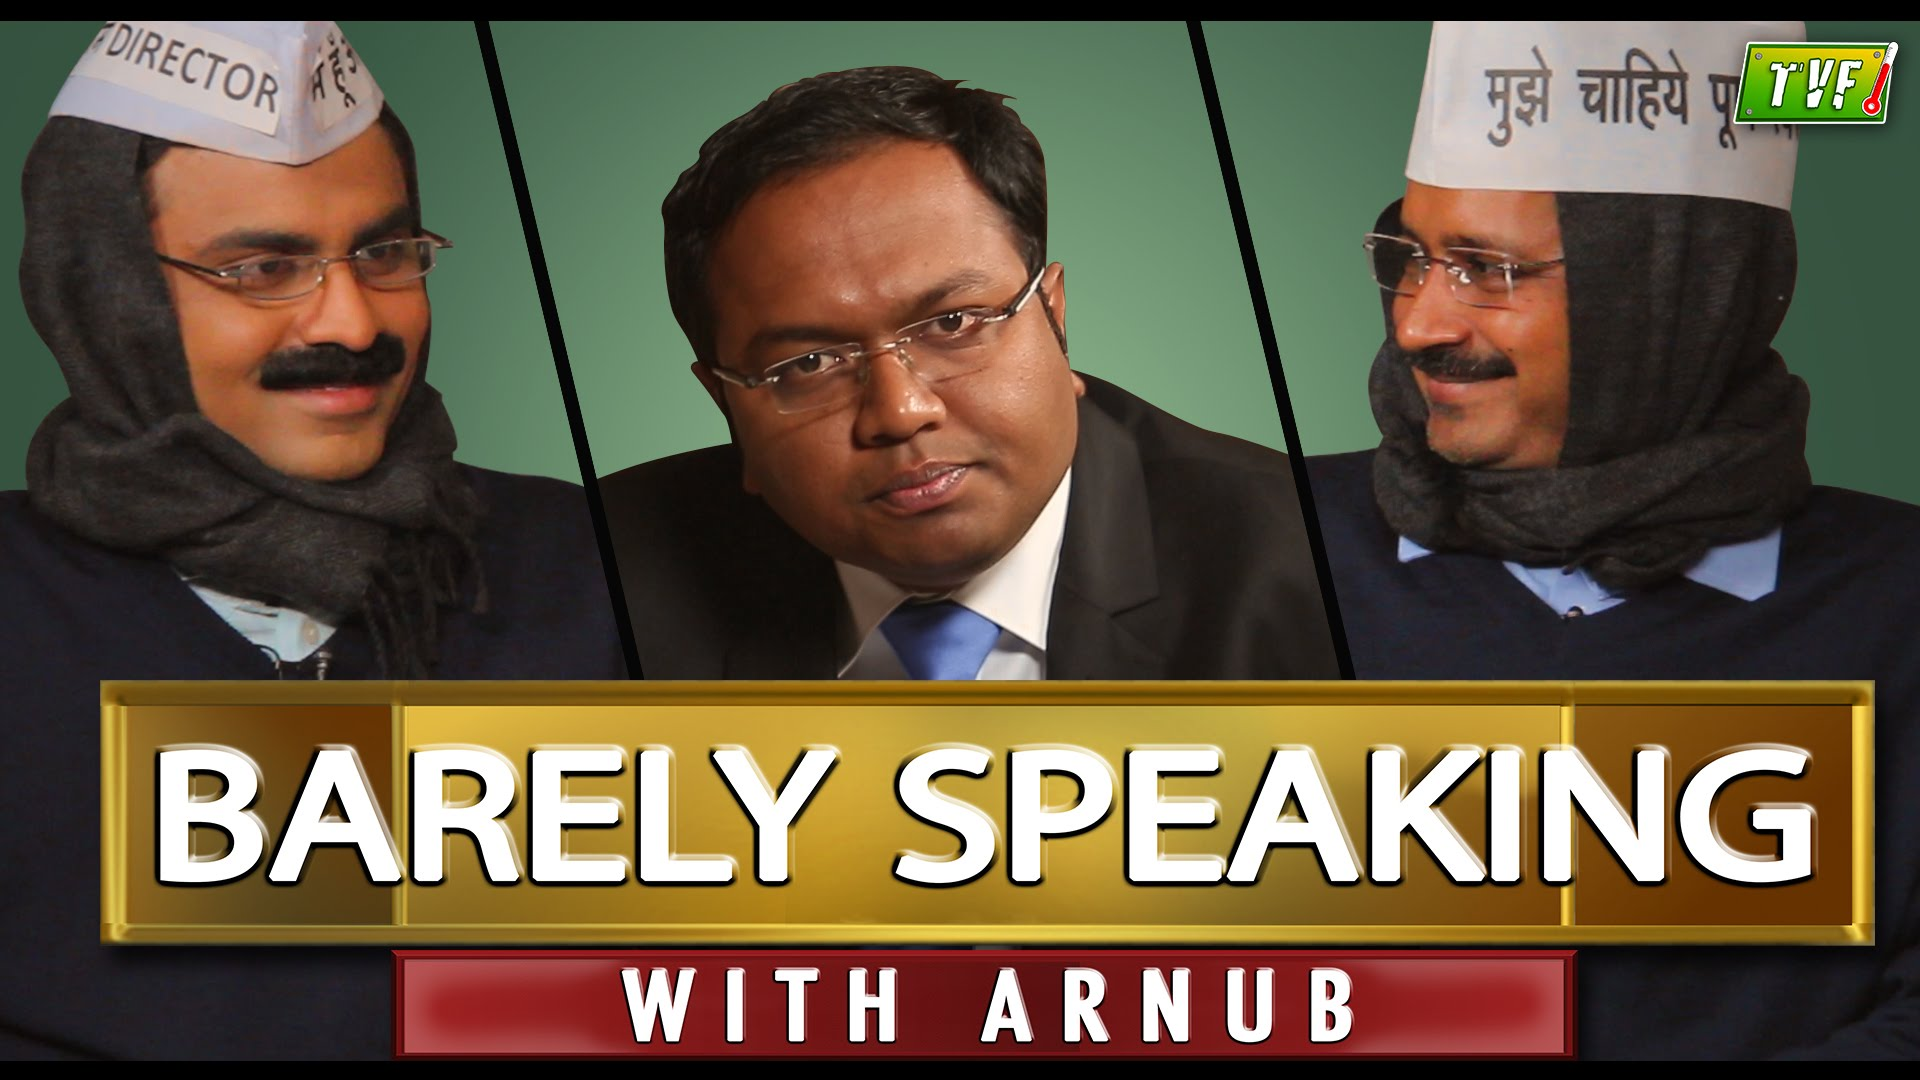 Watch : Arvind Kejriwal Gets grilled in 'Barely Speaking With Arnub'